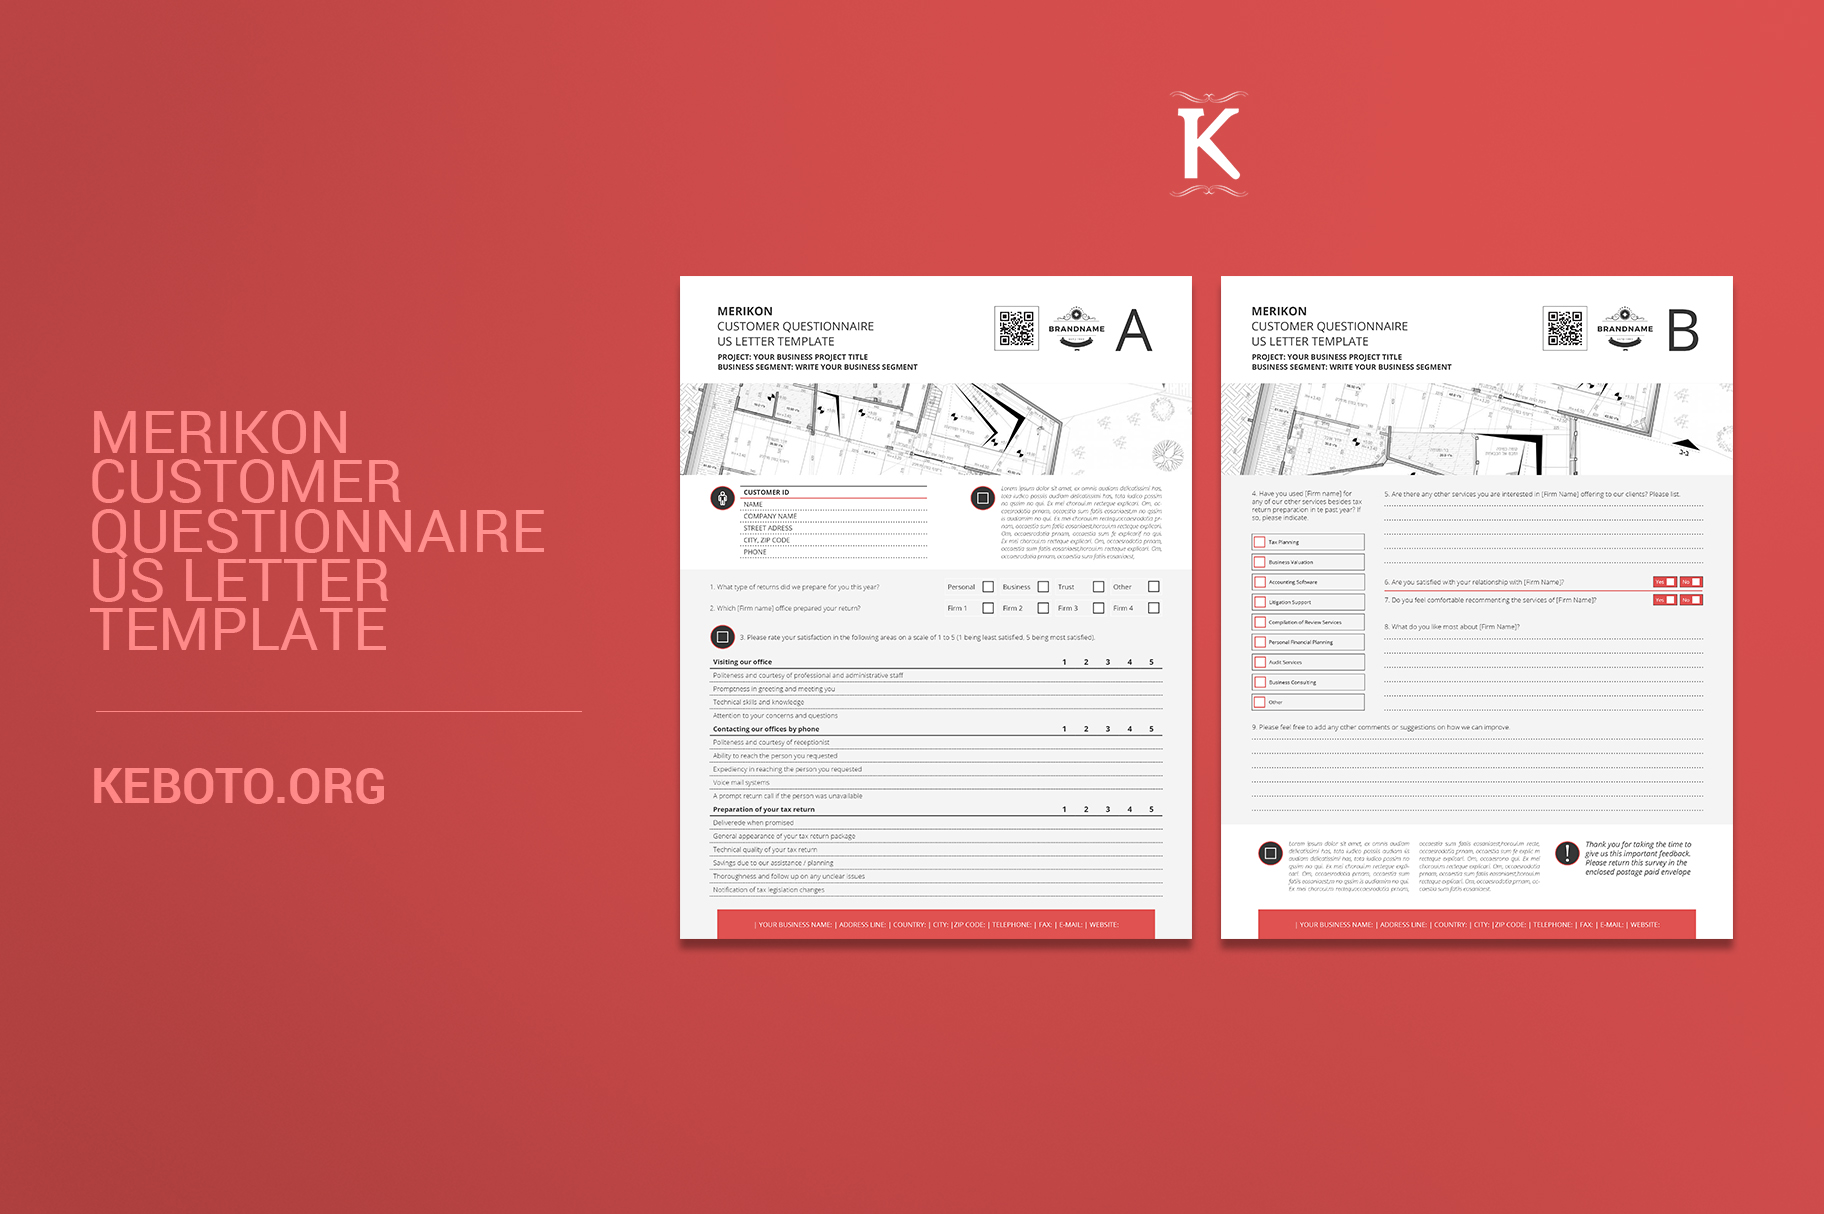 Merikon Customer Questionnaire US Letter Template Example Image 1